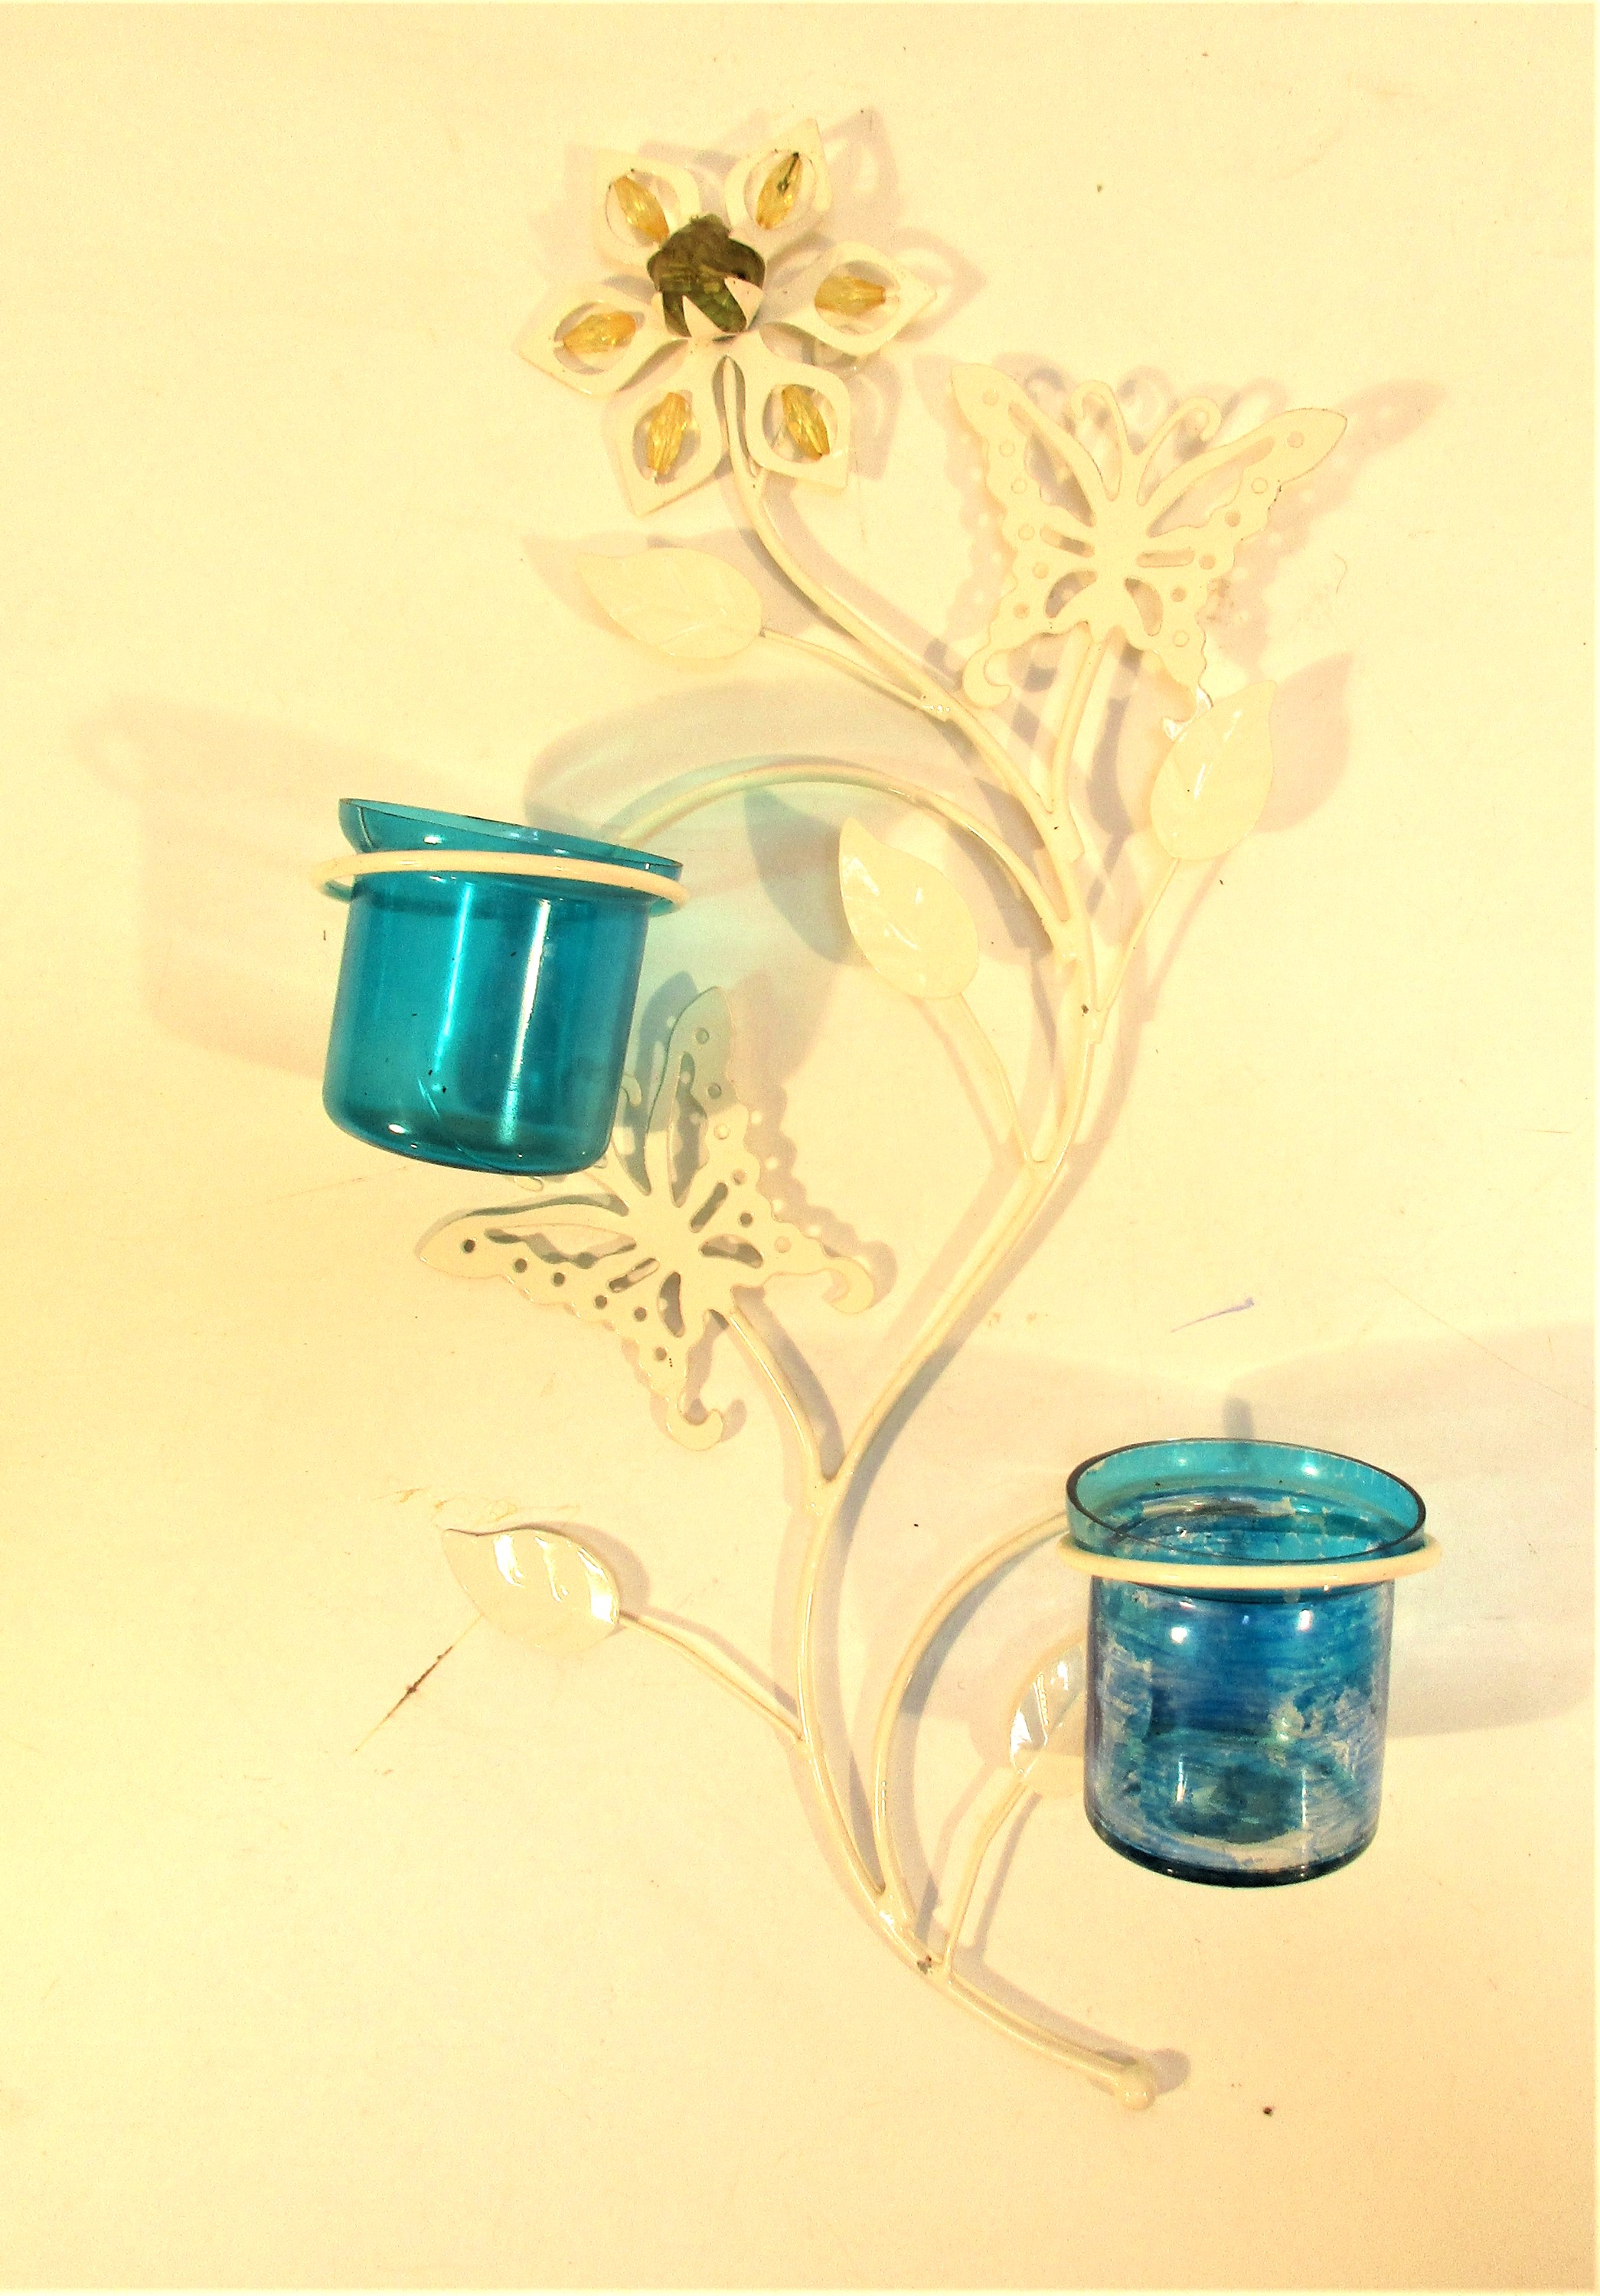 White painted metal display with two glass vases for flowers or nite lights. 40 x 20cm. New